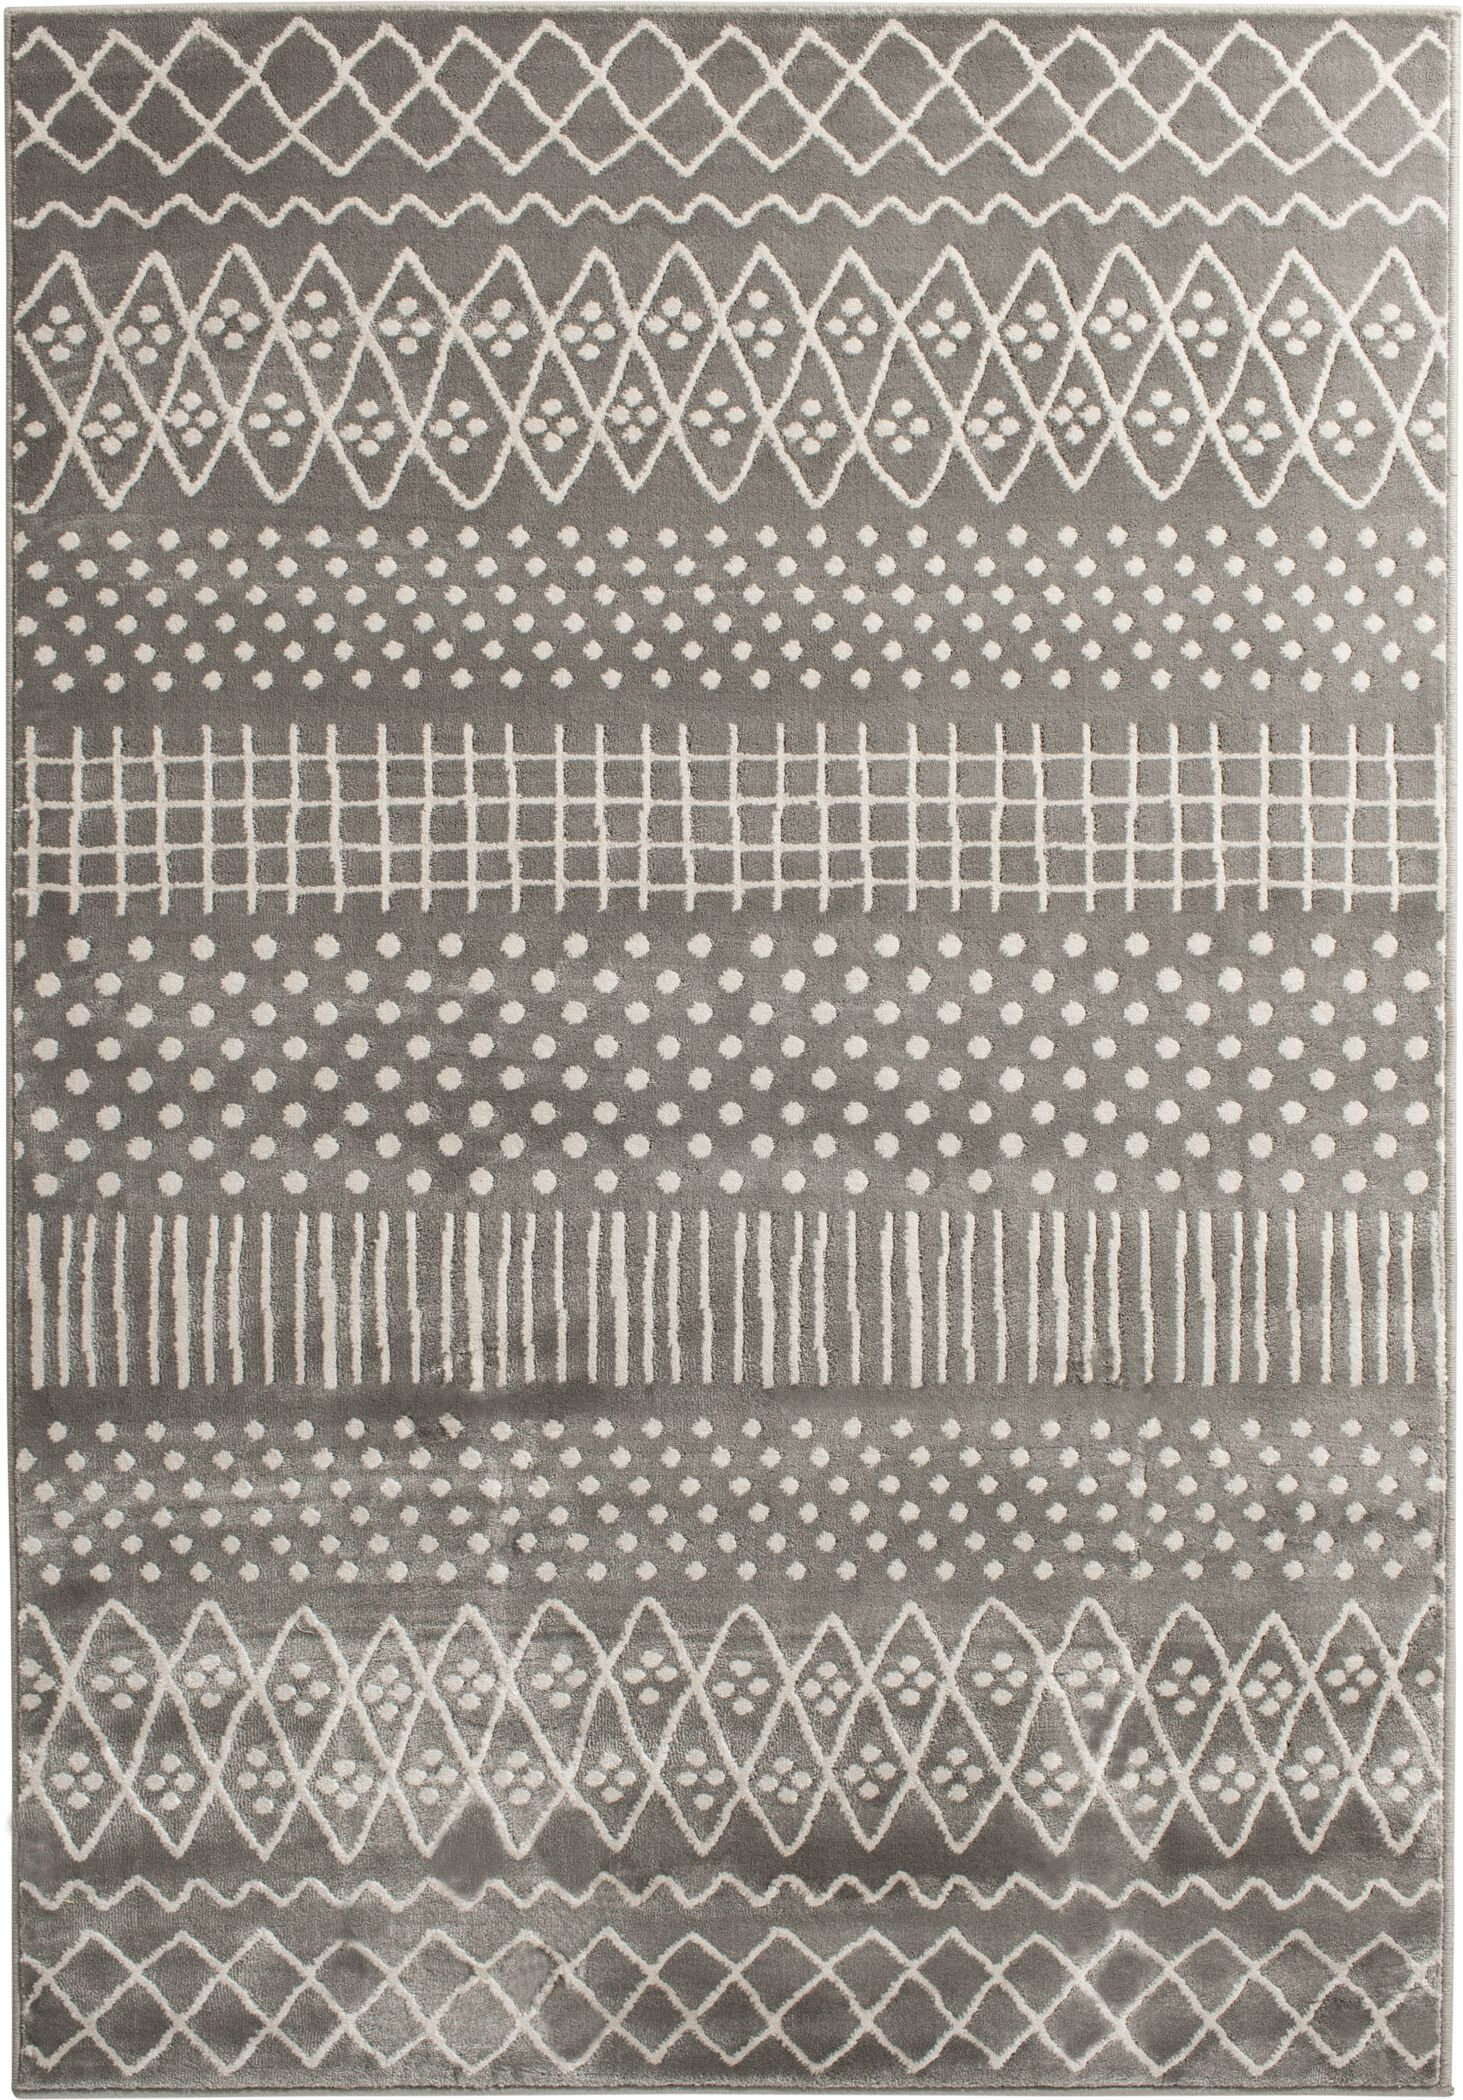 Santana Gray Area Rug Rug Size: Rectangle 5' x 7'6